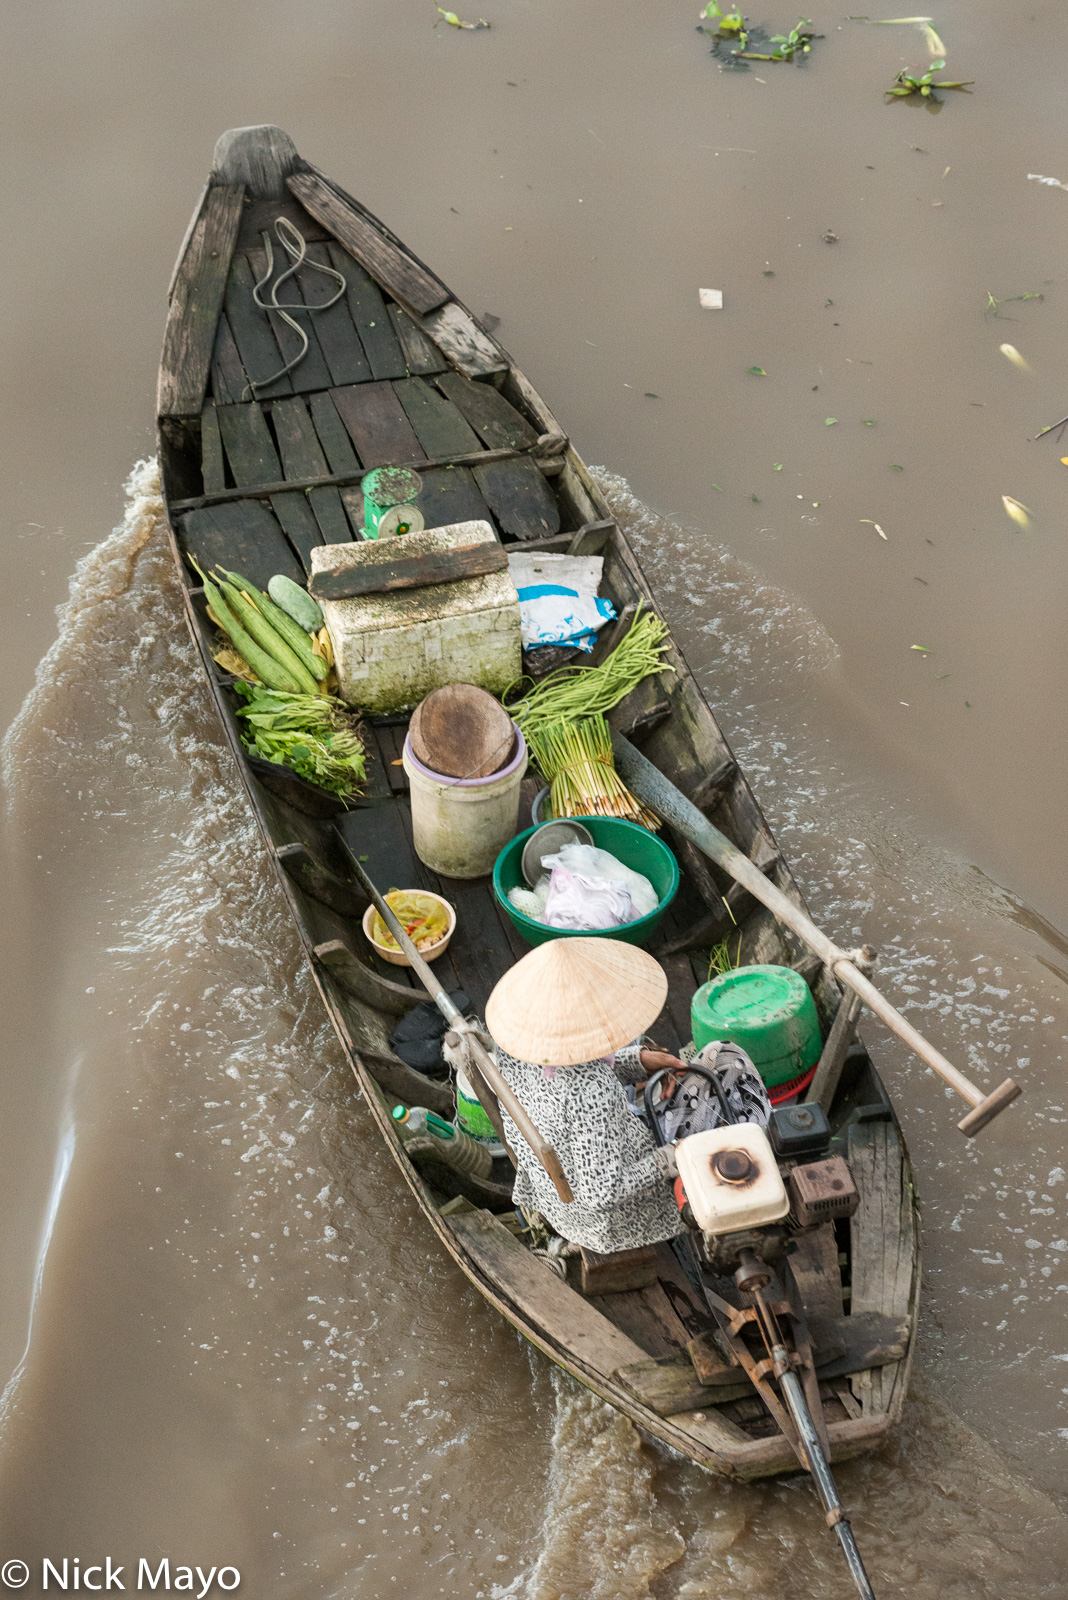 Boat, Soc Trang, Vietnam, photo